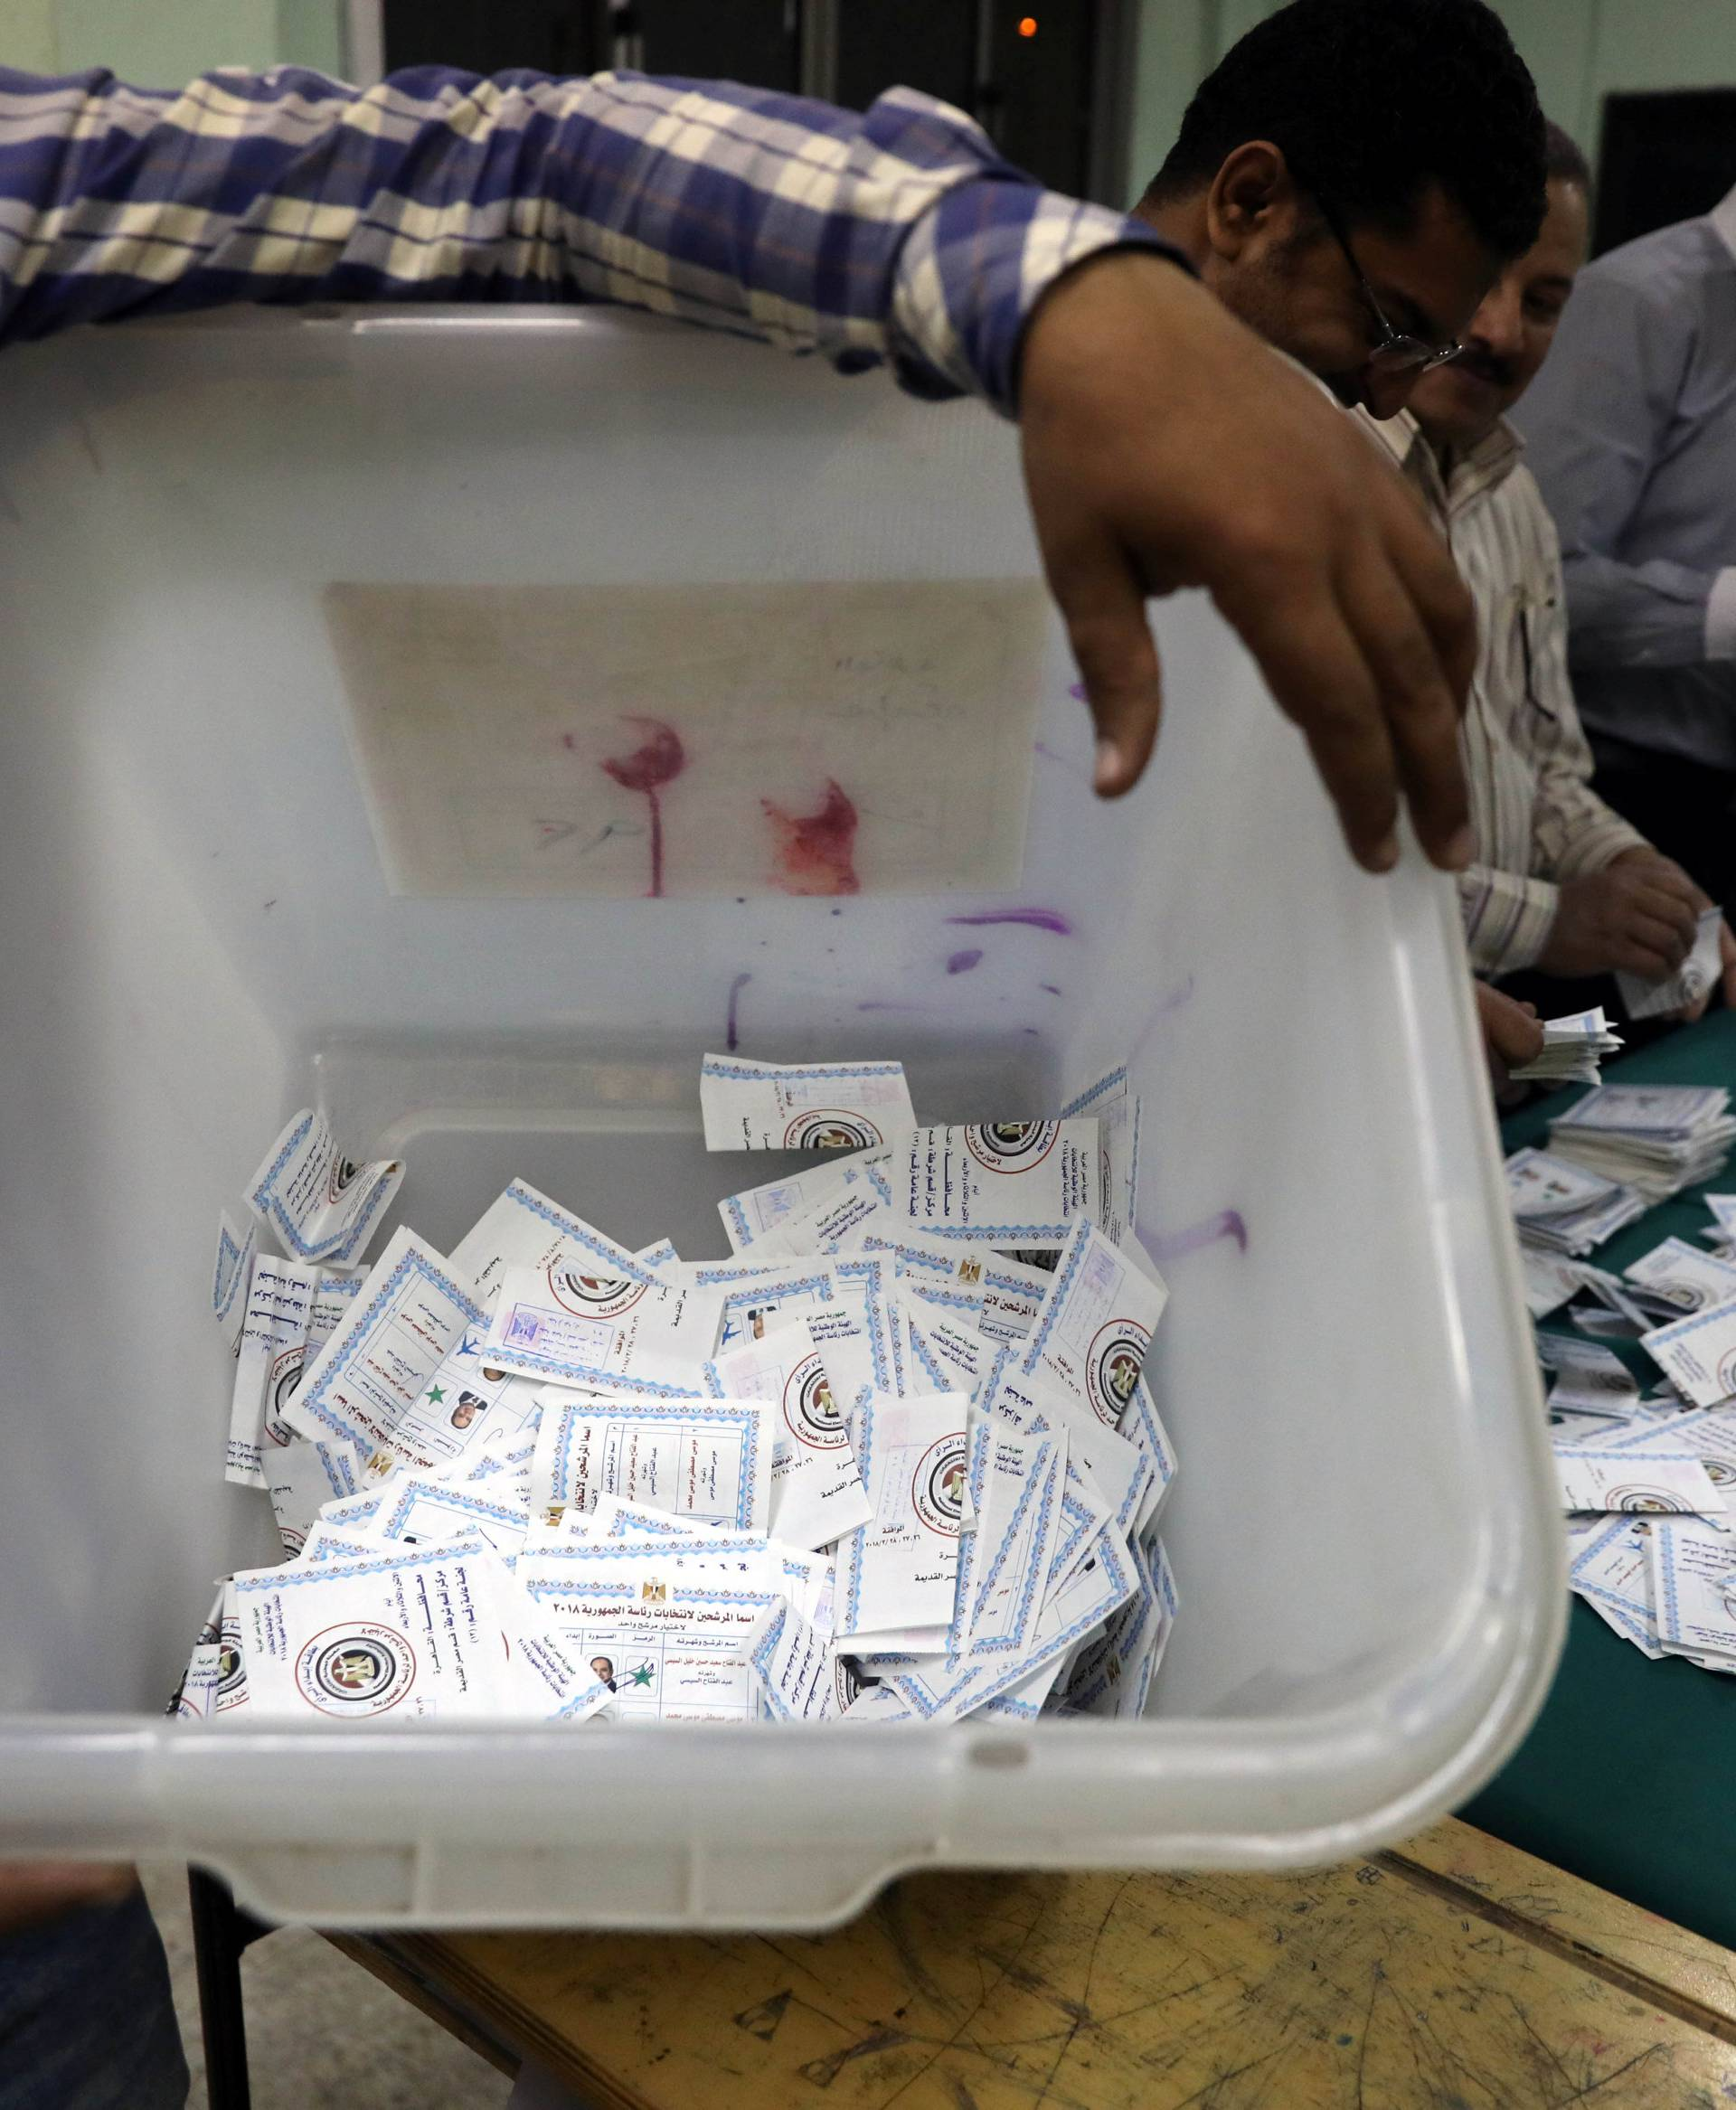 Man carries a ballot box as electoral workers sort ballots to count votes during the presidential election in Cairo